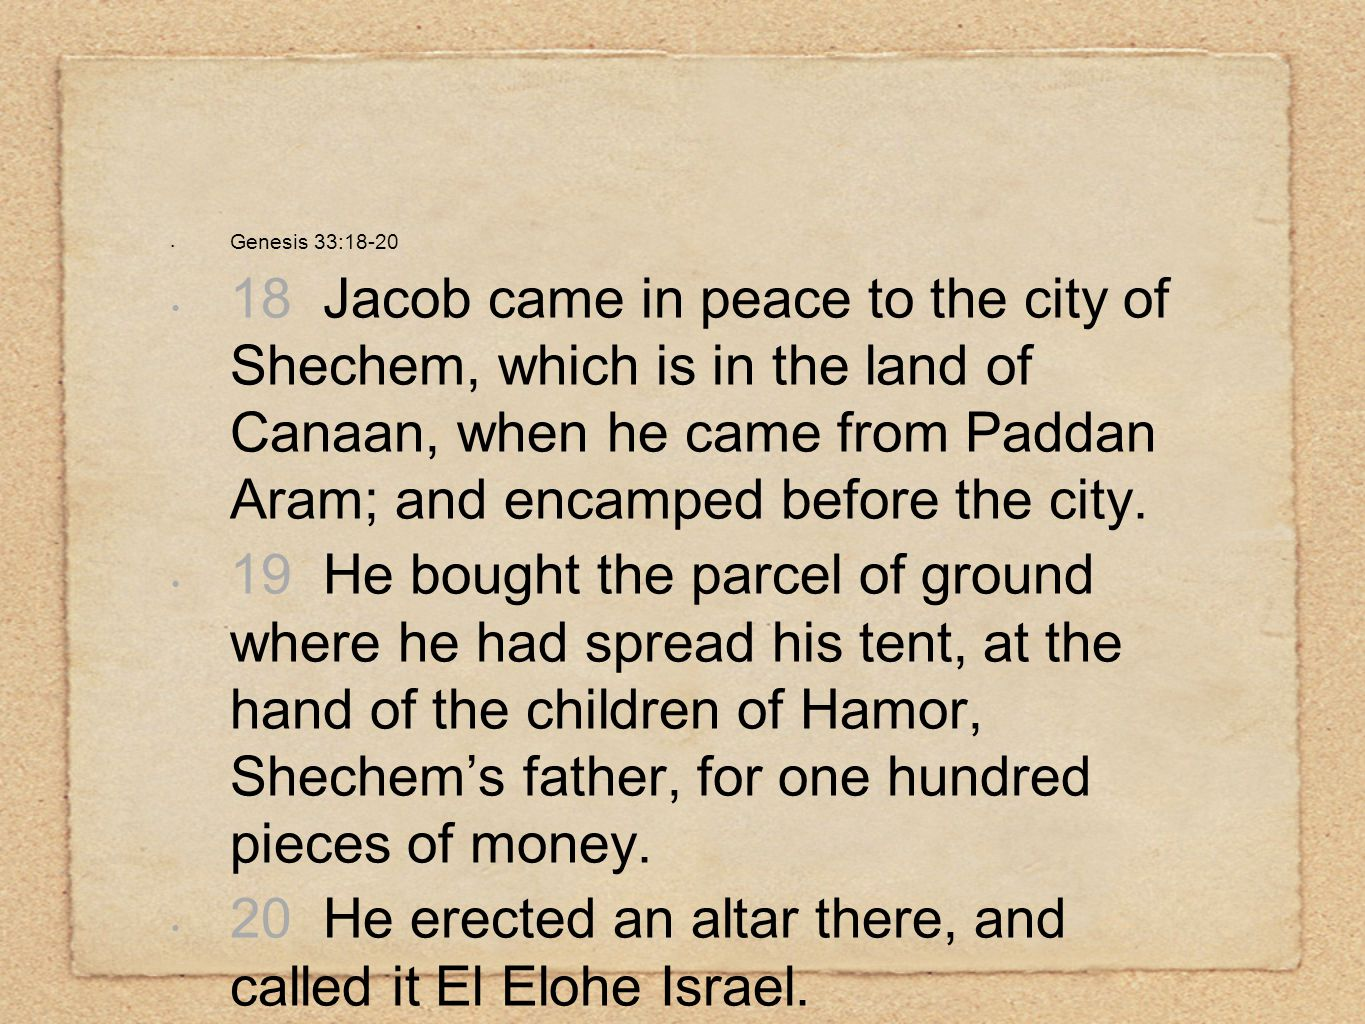 Genesis 33:18-20 18 Jacob came in peace to the city of Shechem, which is in the land of Canaan, when he came from Paddan Aram; and encamped before the